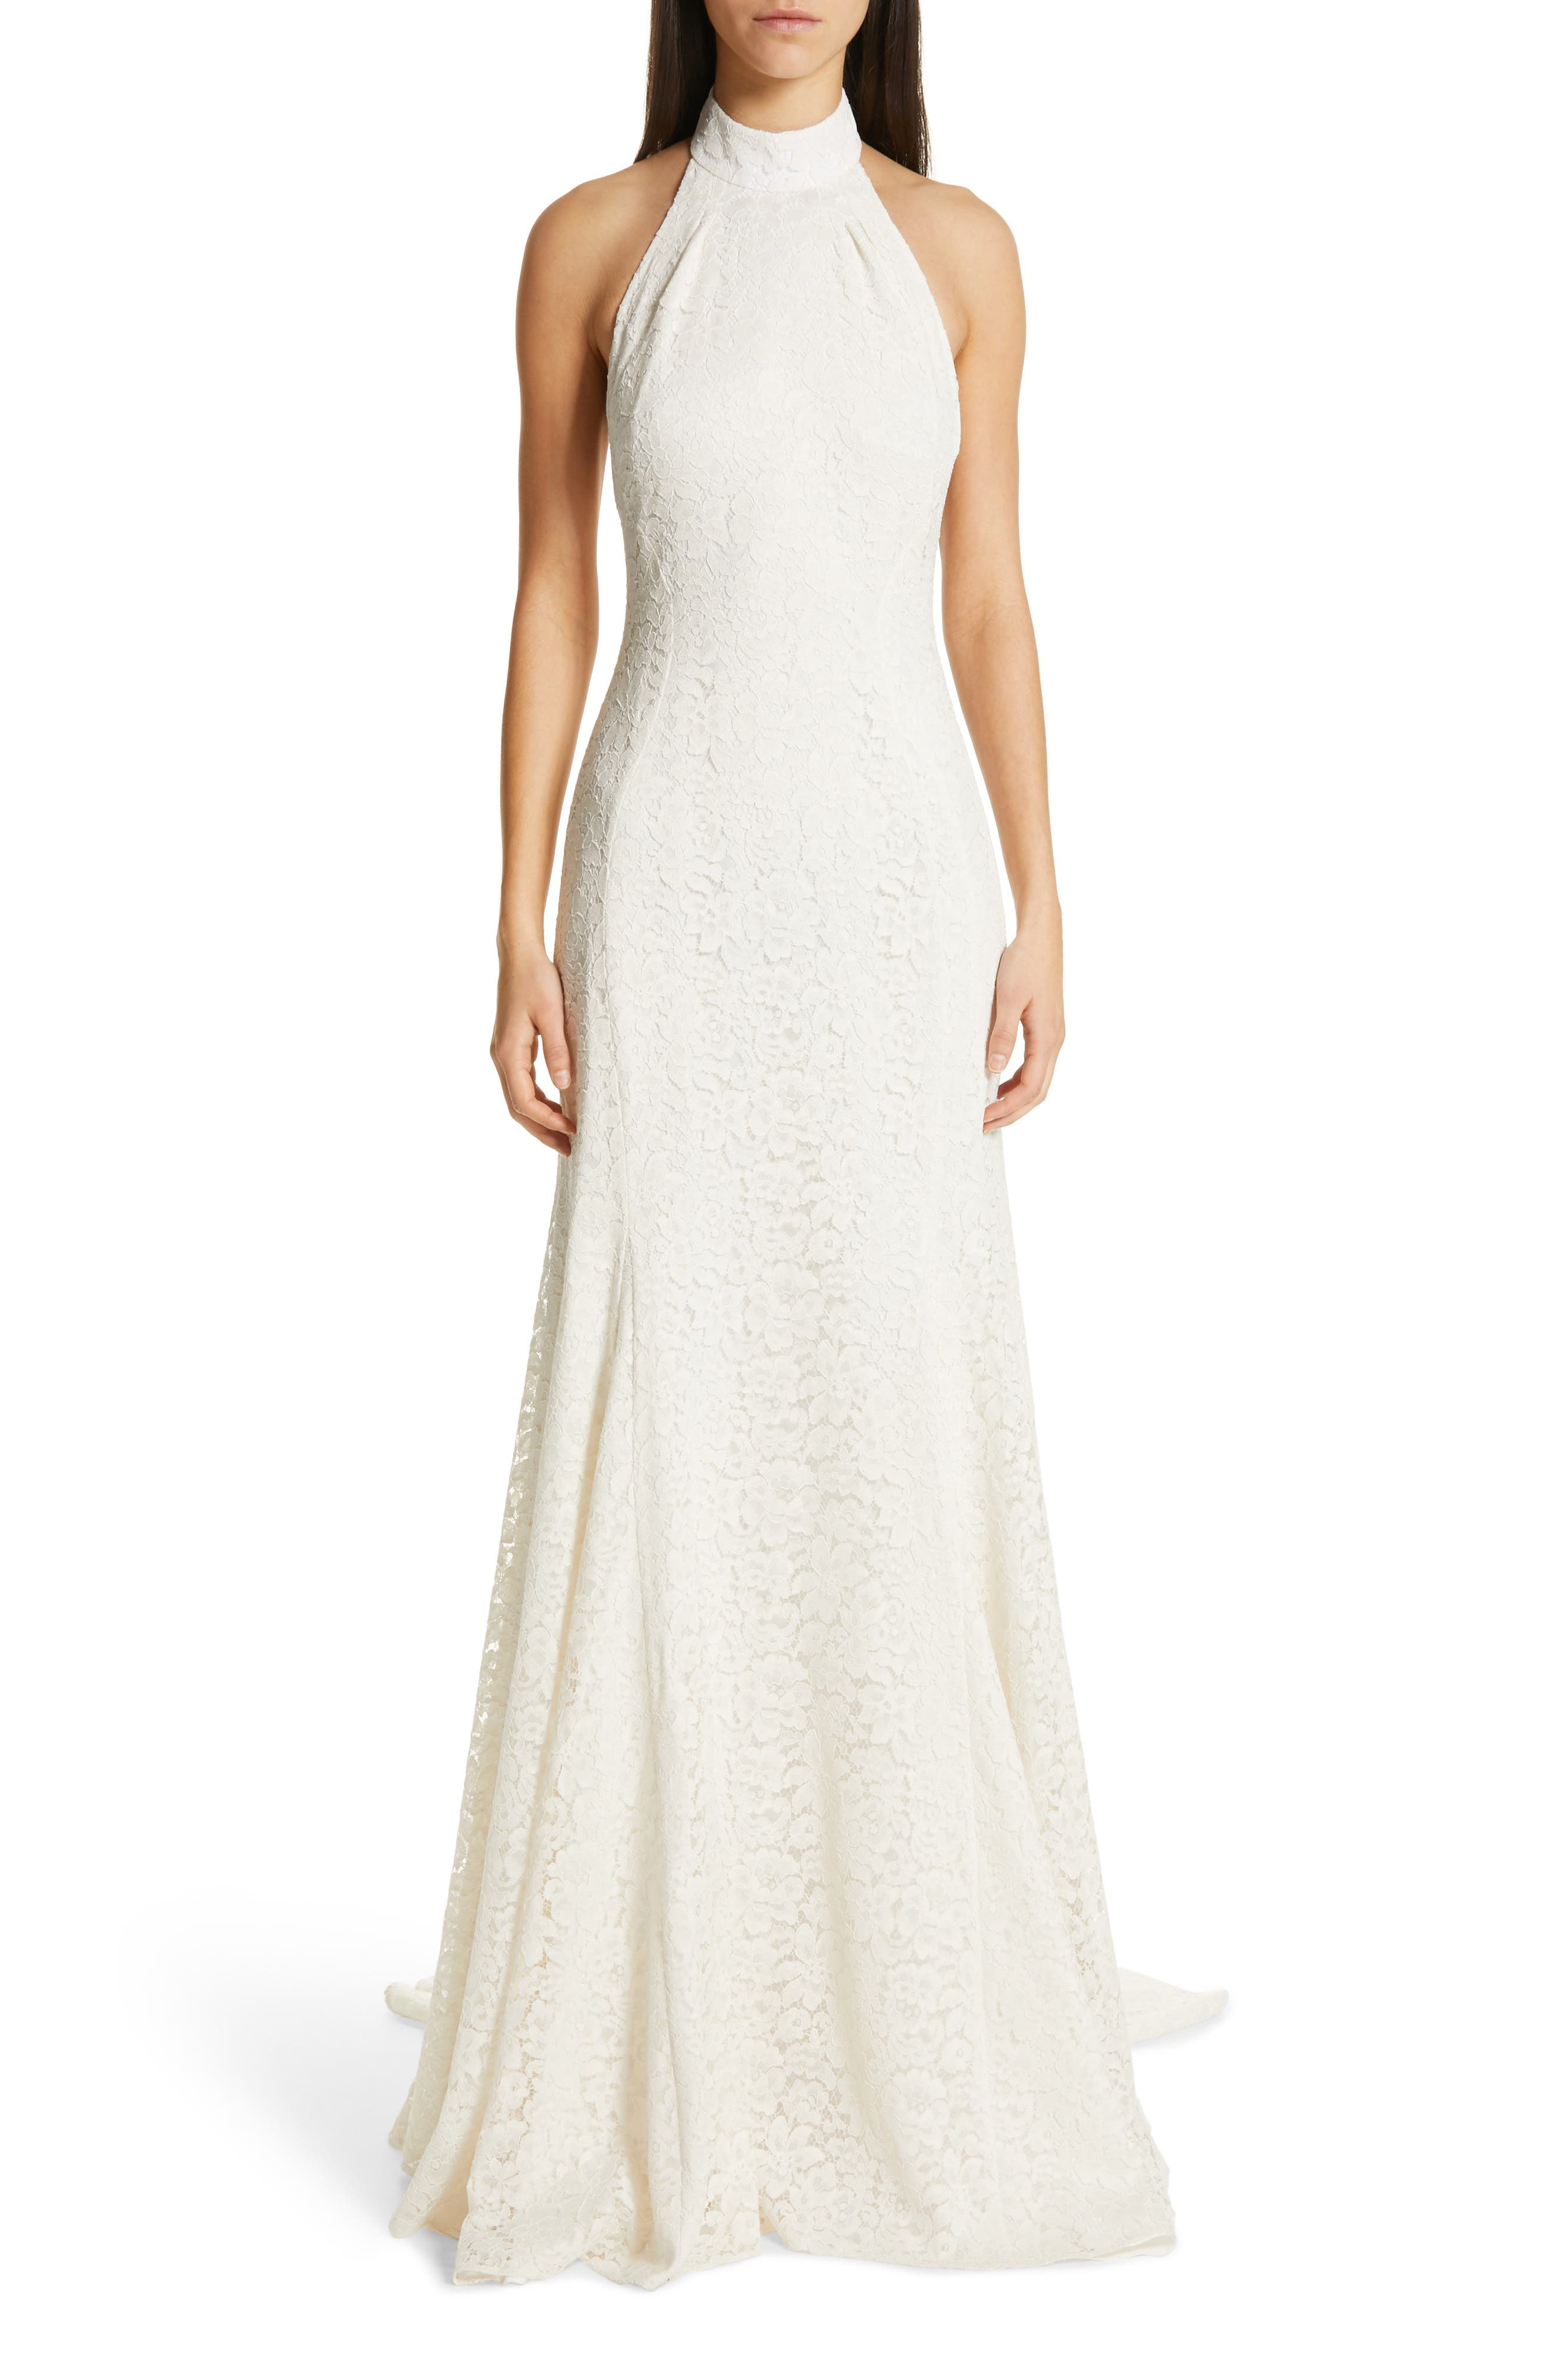 Stella Mccartney F18 Magnolia Halter Lace Wedding Dress, 8 IT - Ivory